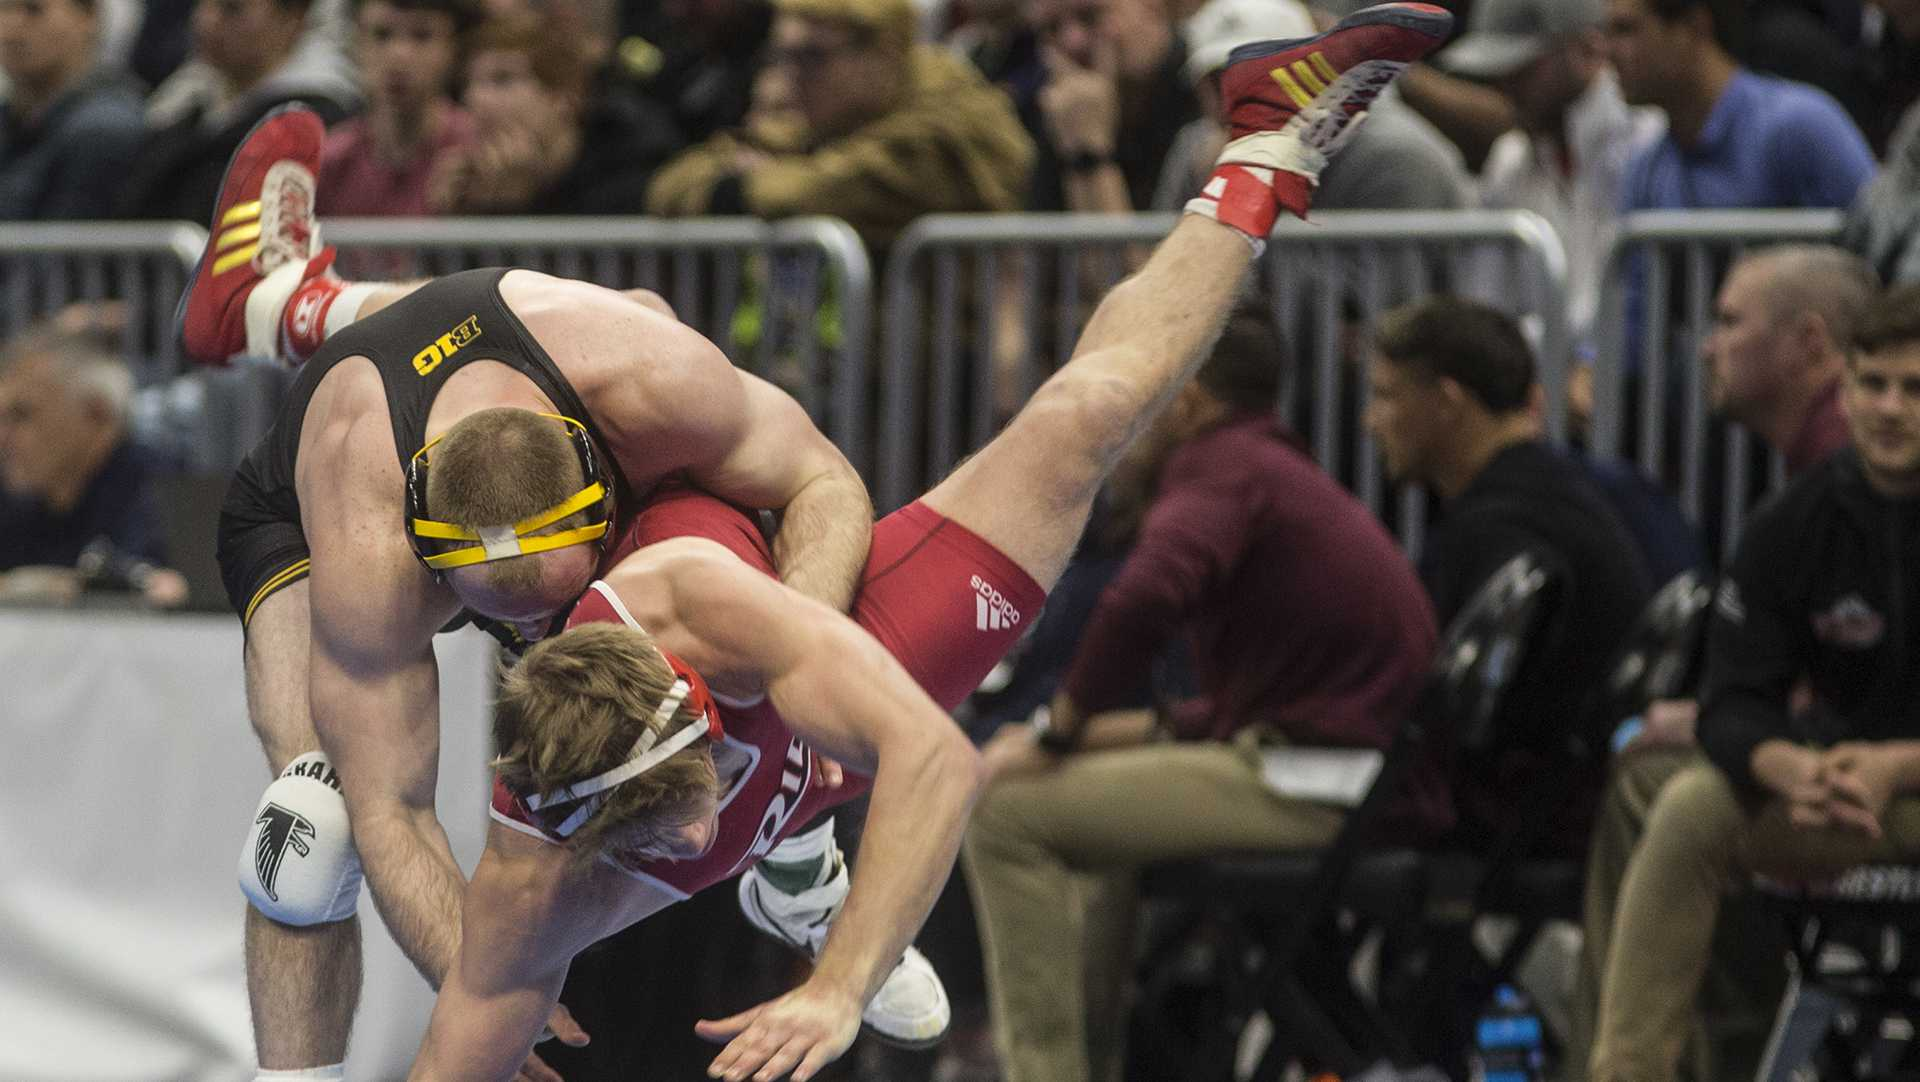 Iowa's 165-pound Alex Marinelli takes down Riders's Chad Walsh during Session 3 of the NCAAs Wrestling Championships at Quicken Loans Arena in Cleveland, OH on Thursday, March 16, 2018. Marinelli defeated Walsh by decision 7-6, advancing to the semifinals. (Ben Allan Smith/The Daily Iowan)